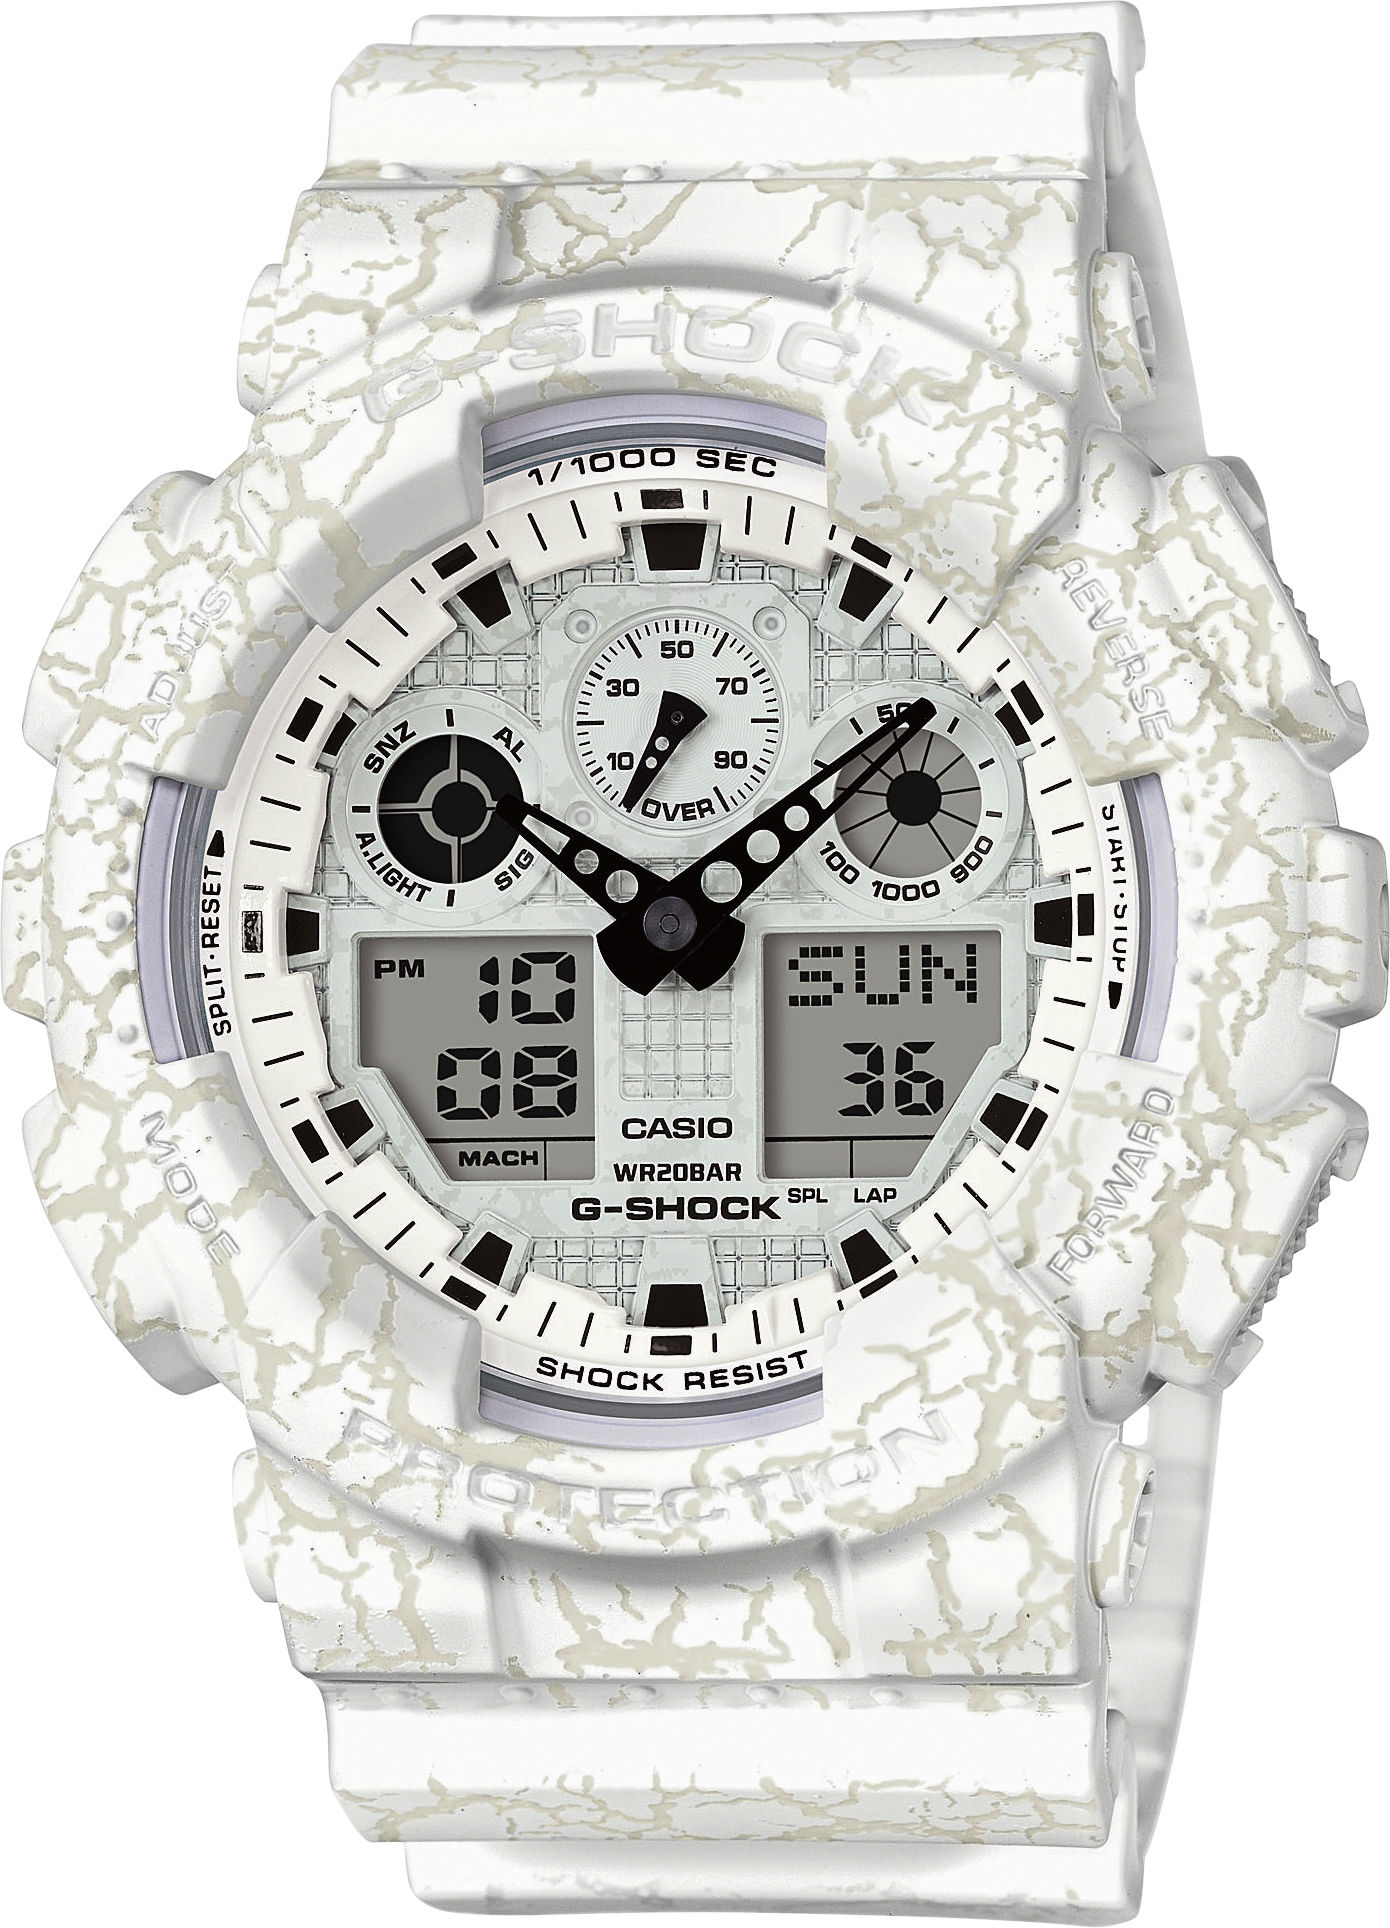 Casio G-Shock Original GA-100CG-7AER Cracked Ground Pattern Special Edition eed0307a9e3